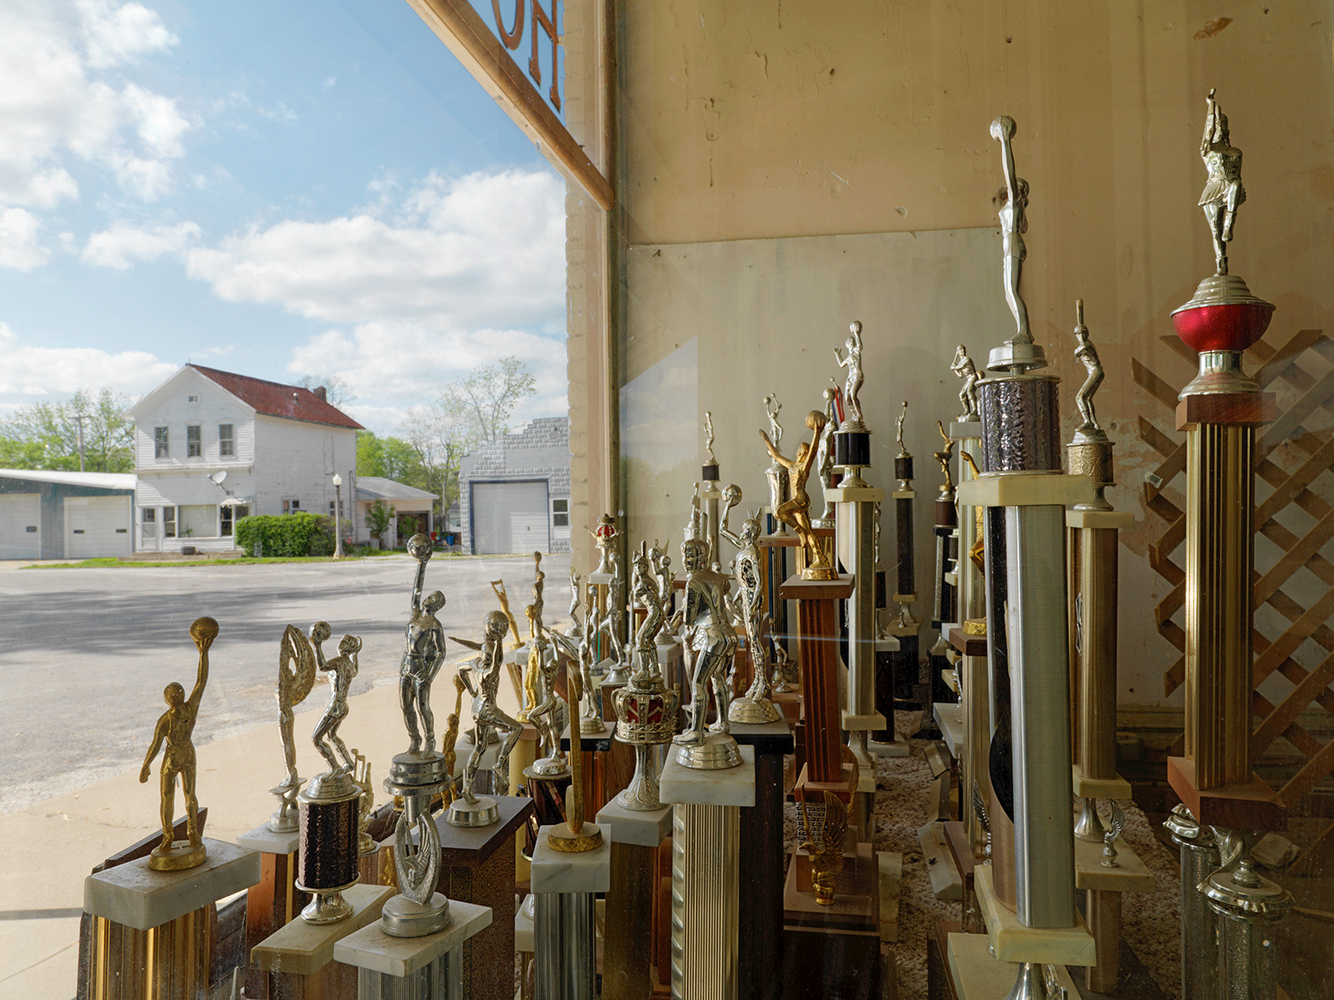 Trophies in an Abandoned Storefront Window, Plymouth, IL 2009